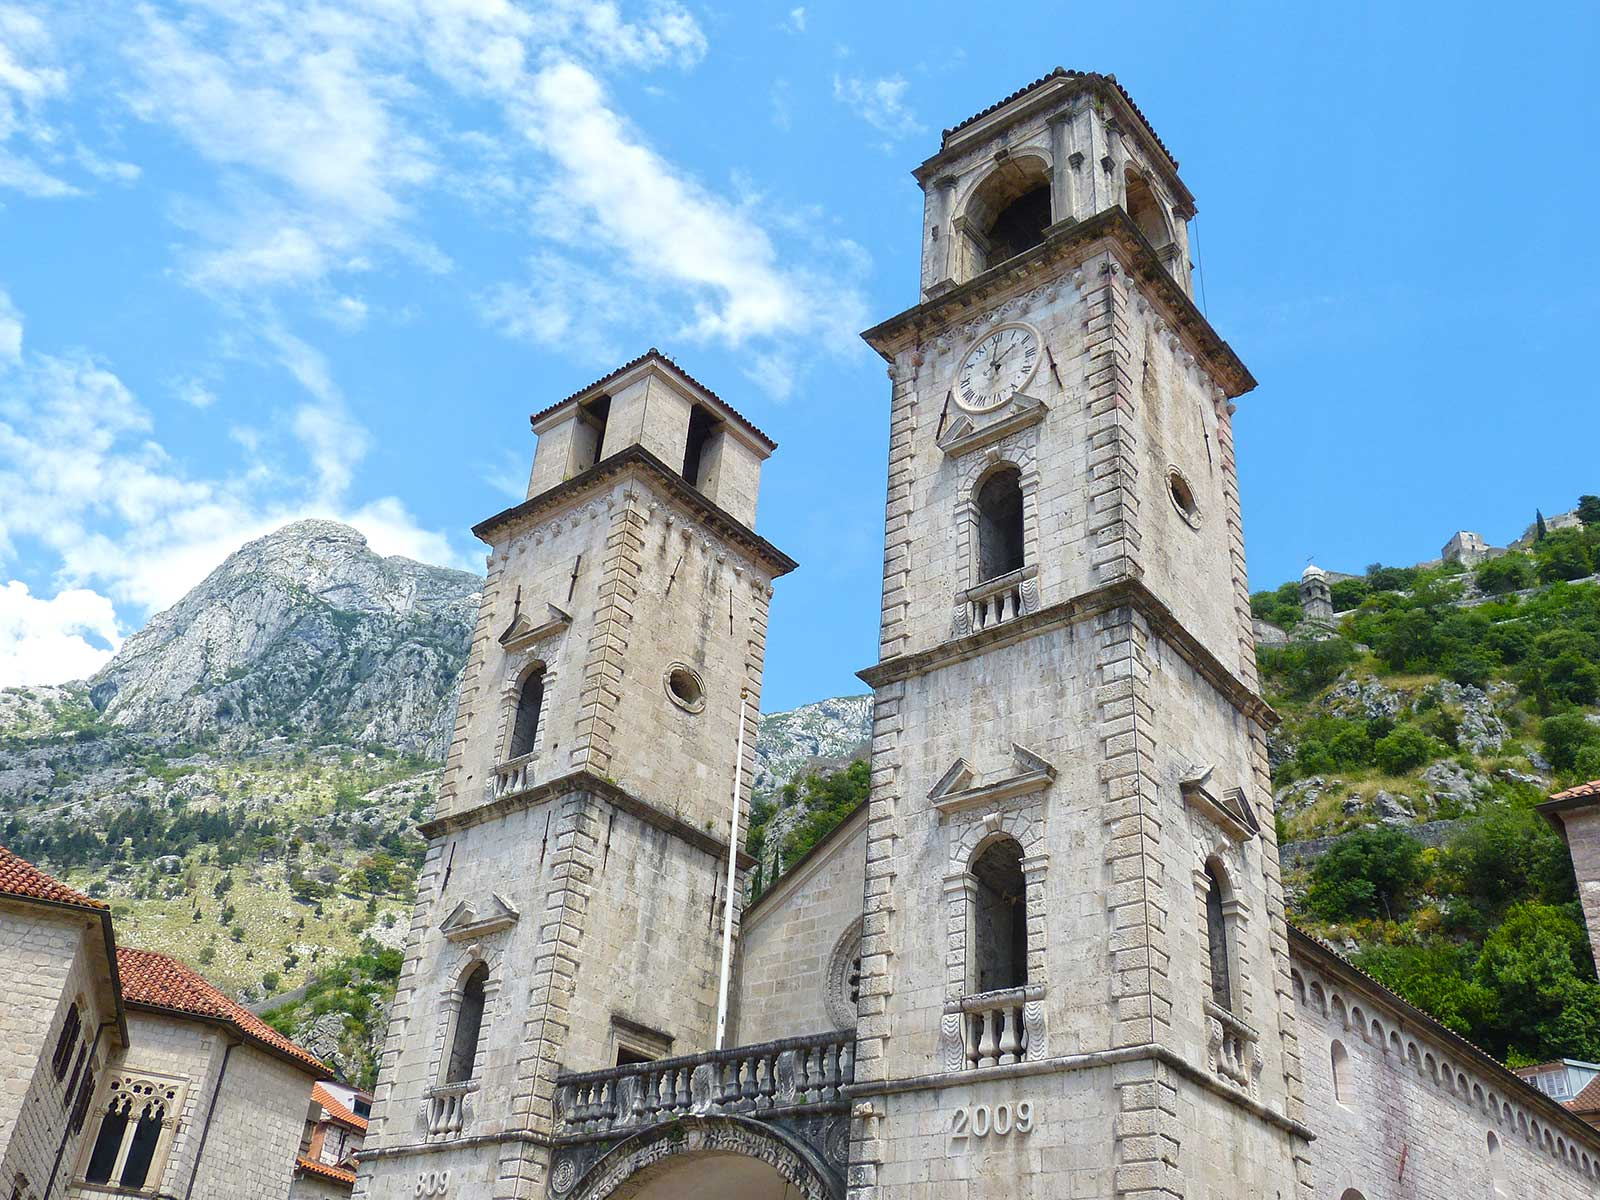 -images-excursions-montenegro-boat-tour-4.2.kotor-town-montenegro-boat-tour-church.jpg